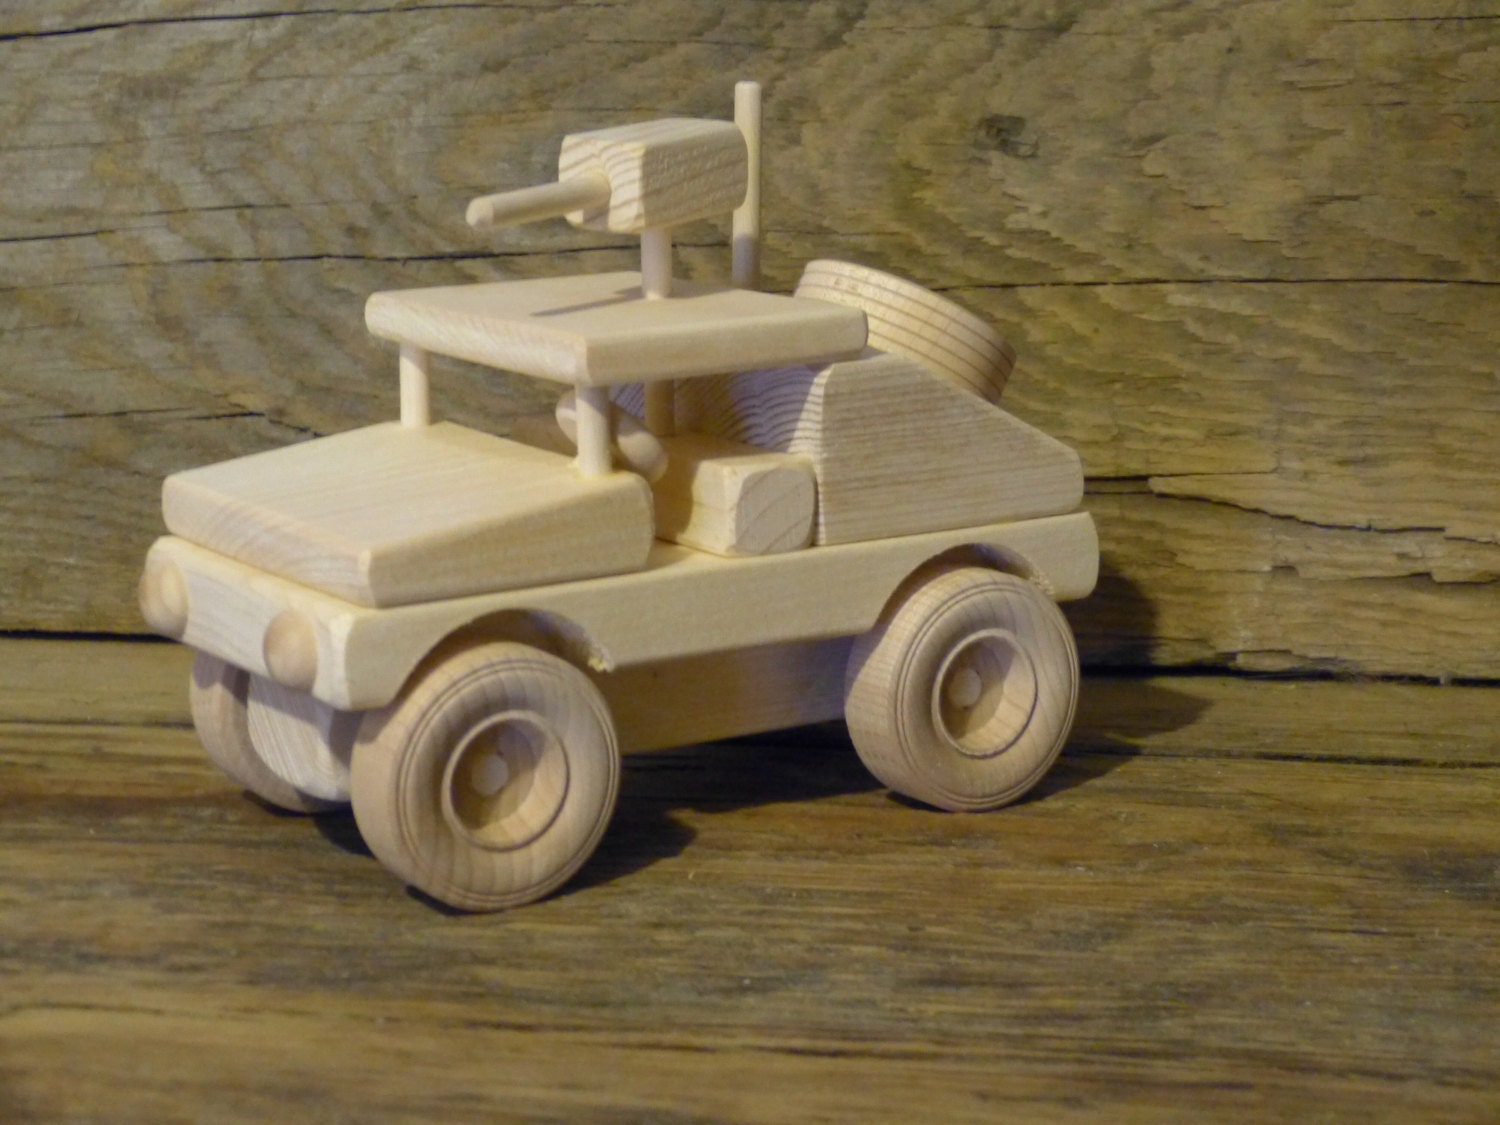 Military Vehicle Toys For Boys : Handmade wood toy humvee hummer truck wooden toys jeep